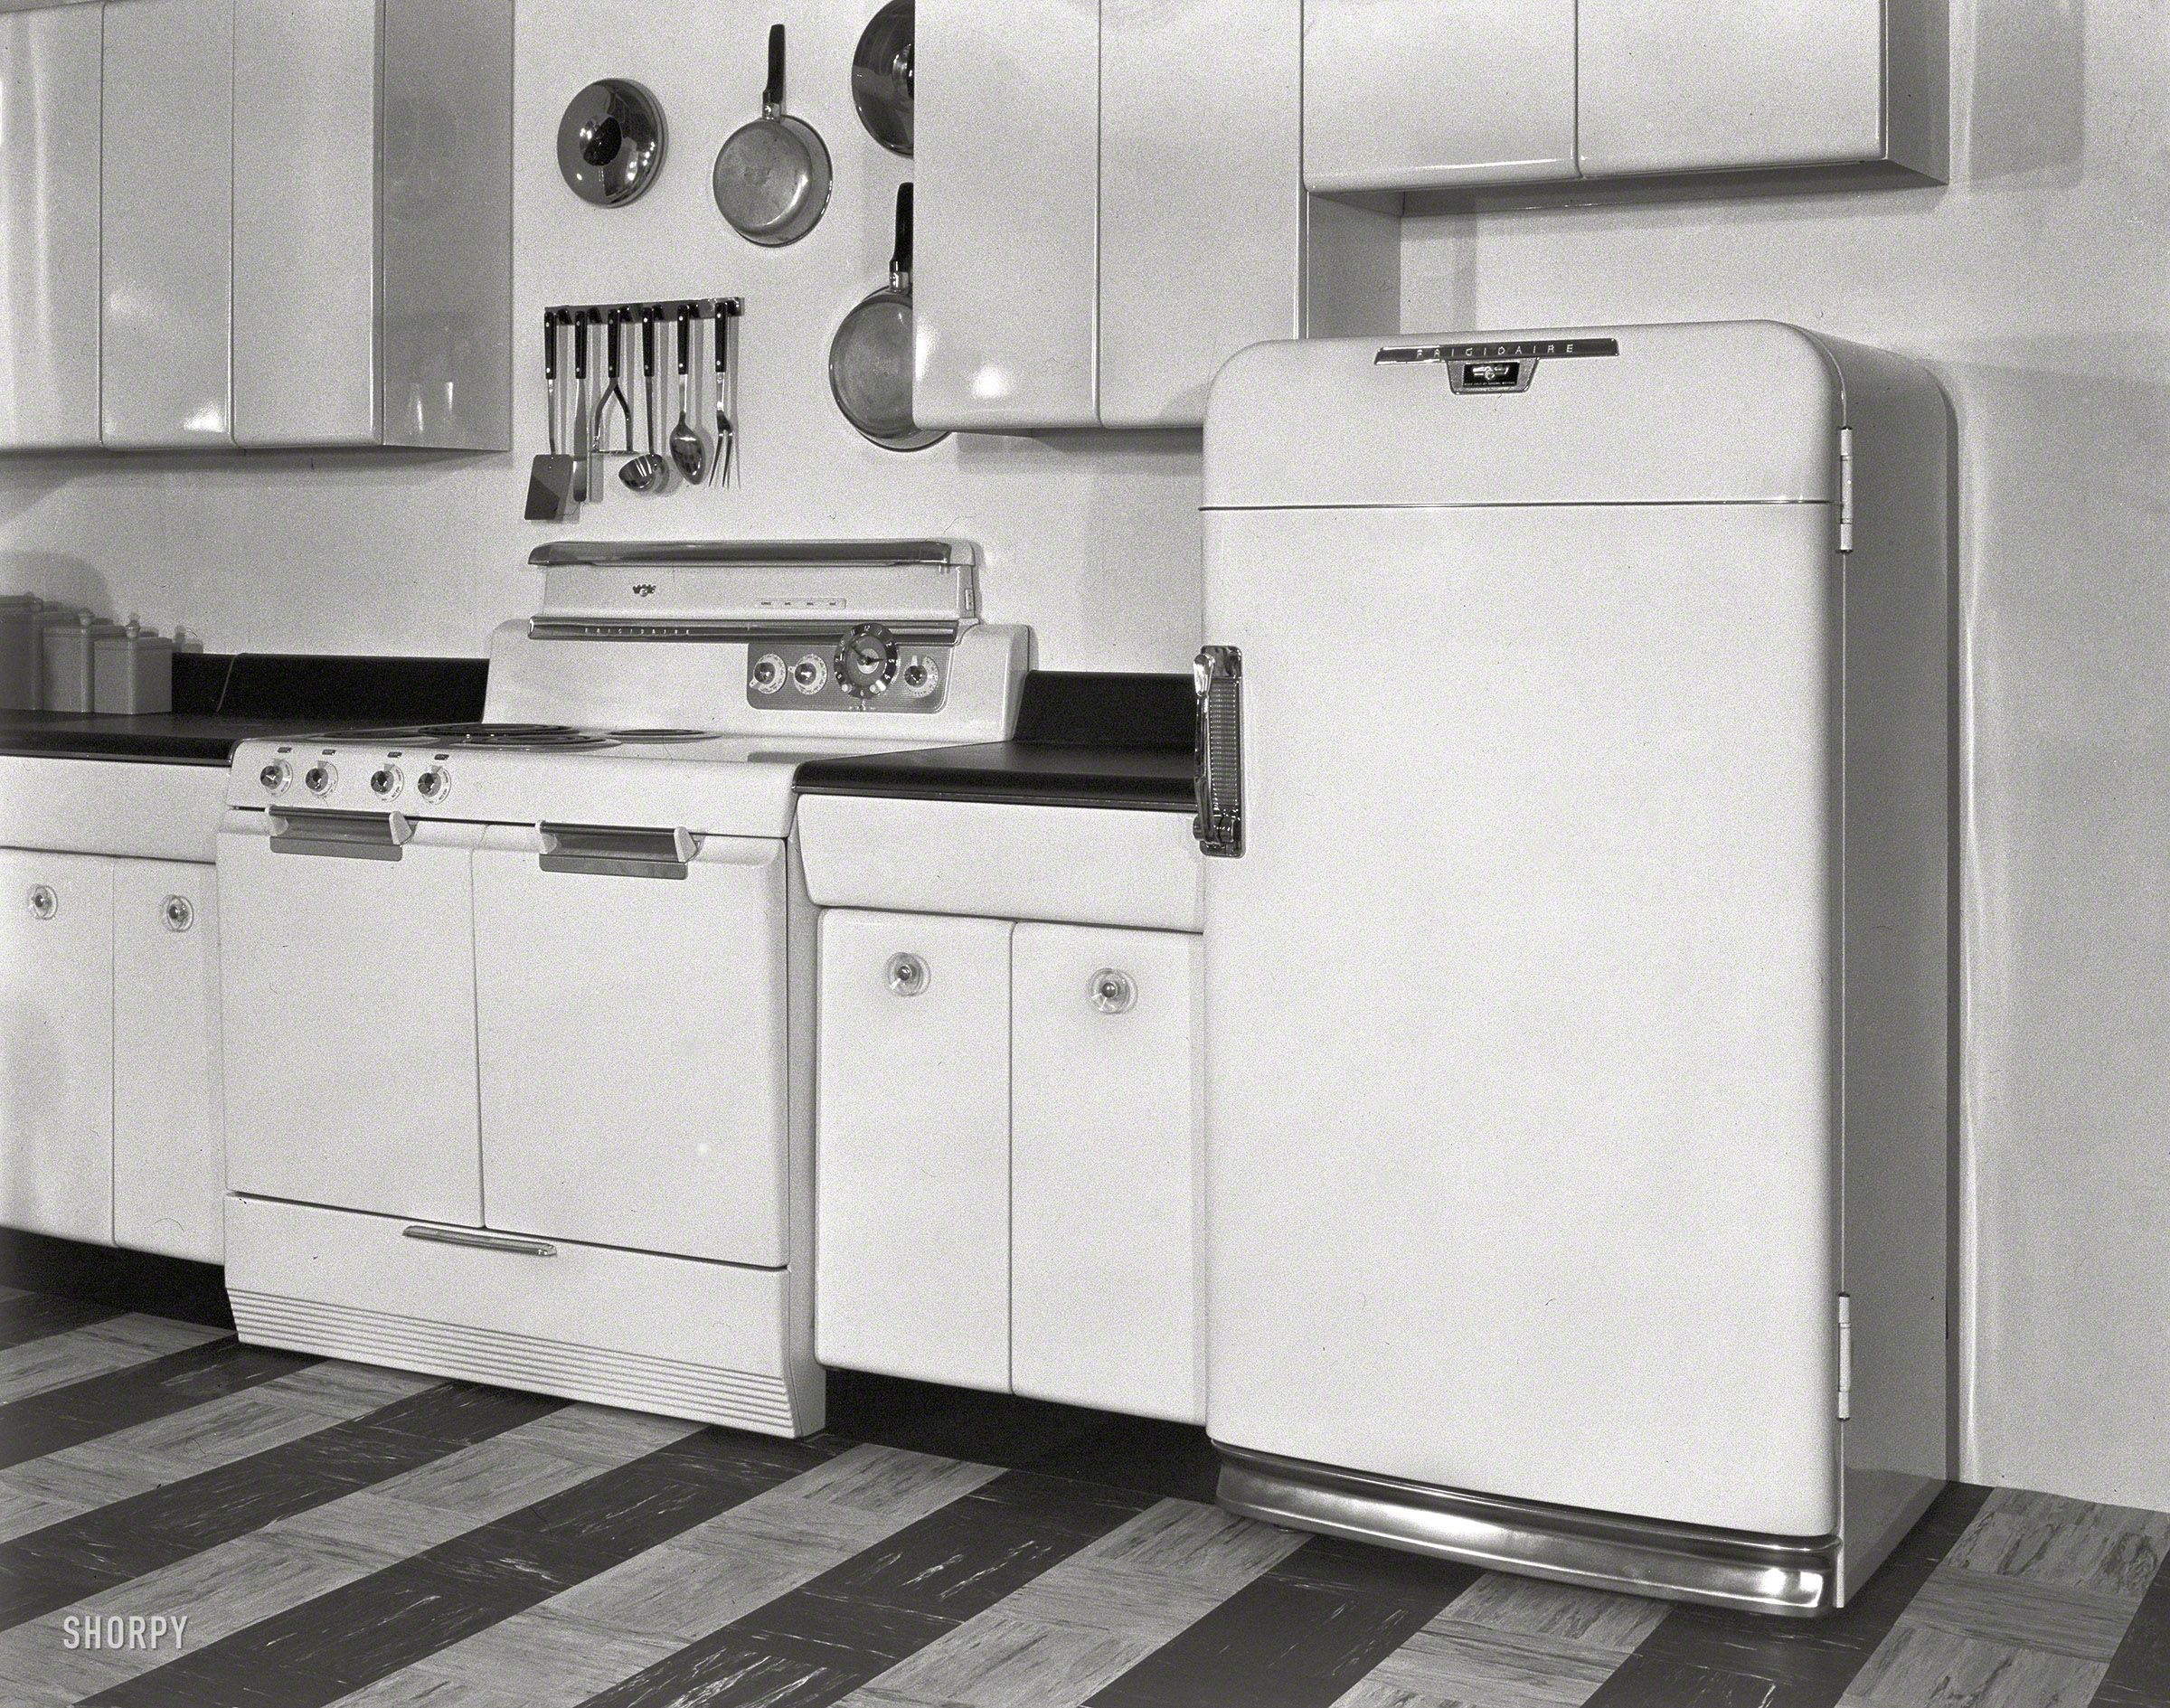 Shorpy Historical Photo Archive :: Frigidaire: June 1, 1951 ...